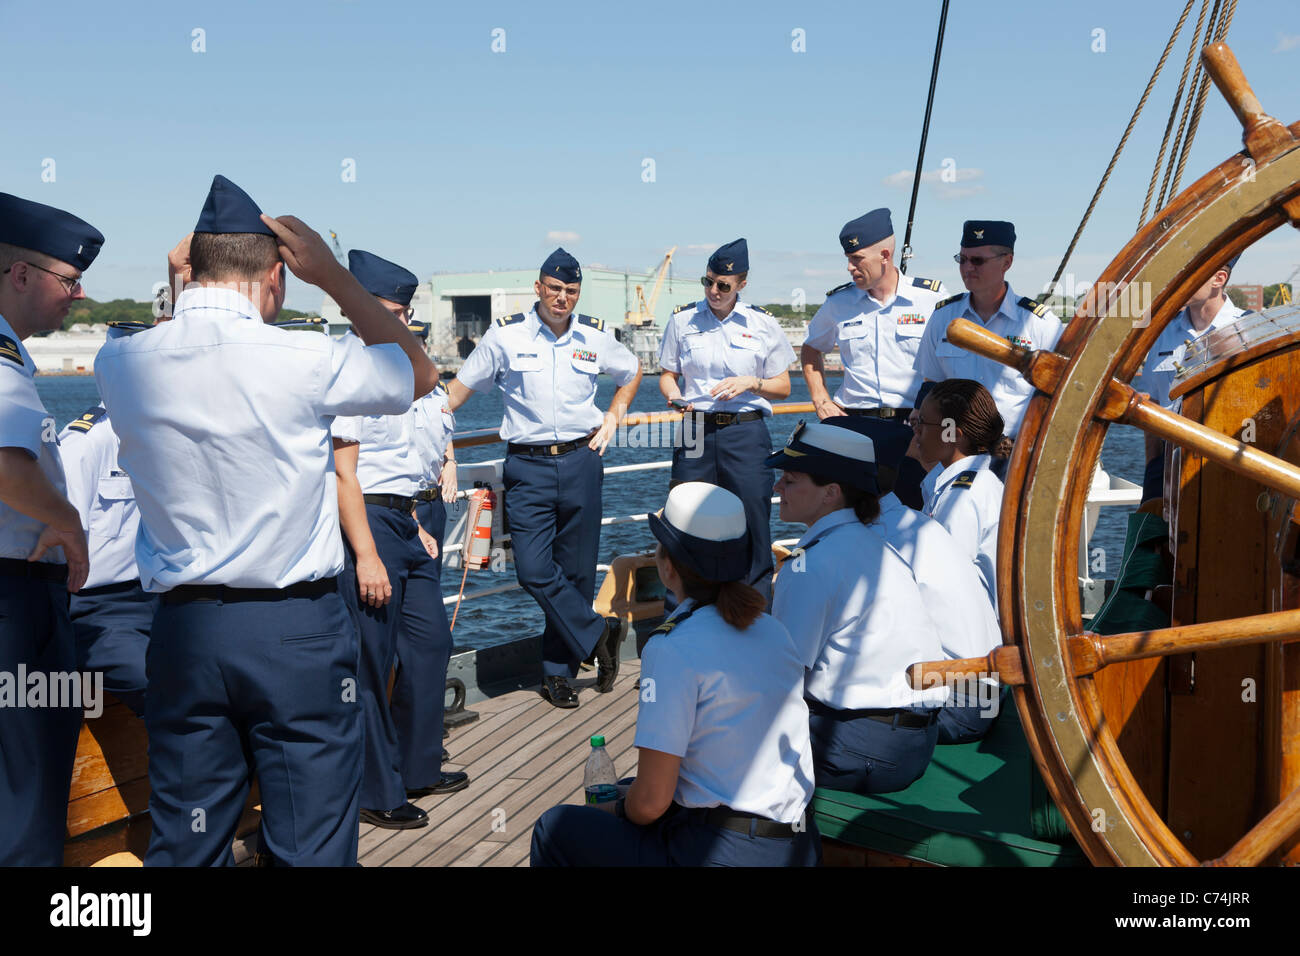 New officers train aboard the USCGC 'Eagle' at its homeport at the Coast Guard Academy in New London, Connecticut. - Stock Image